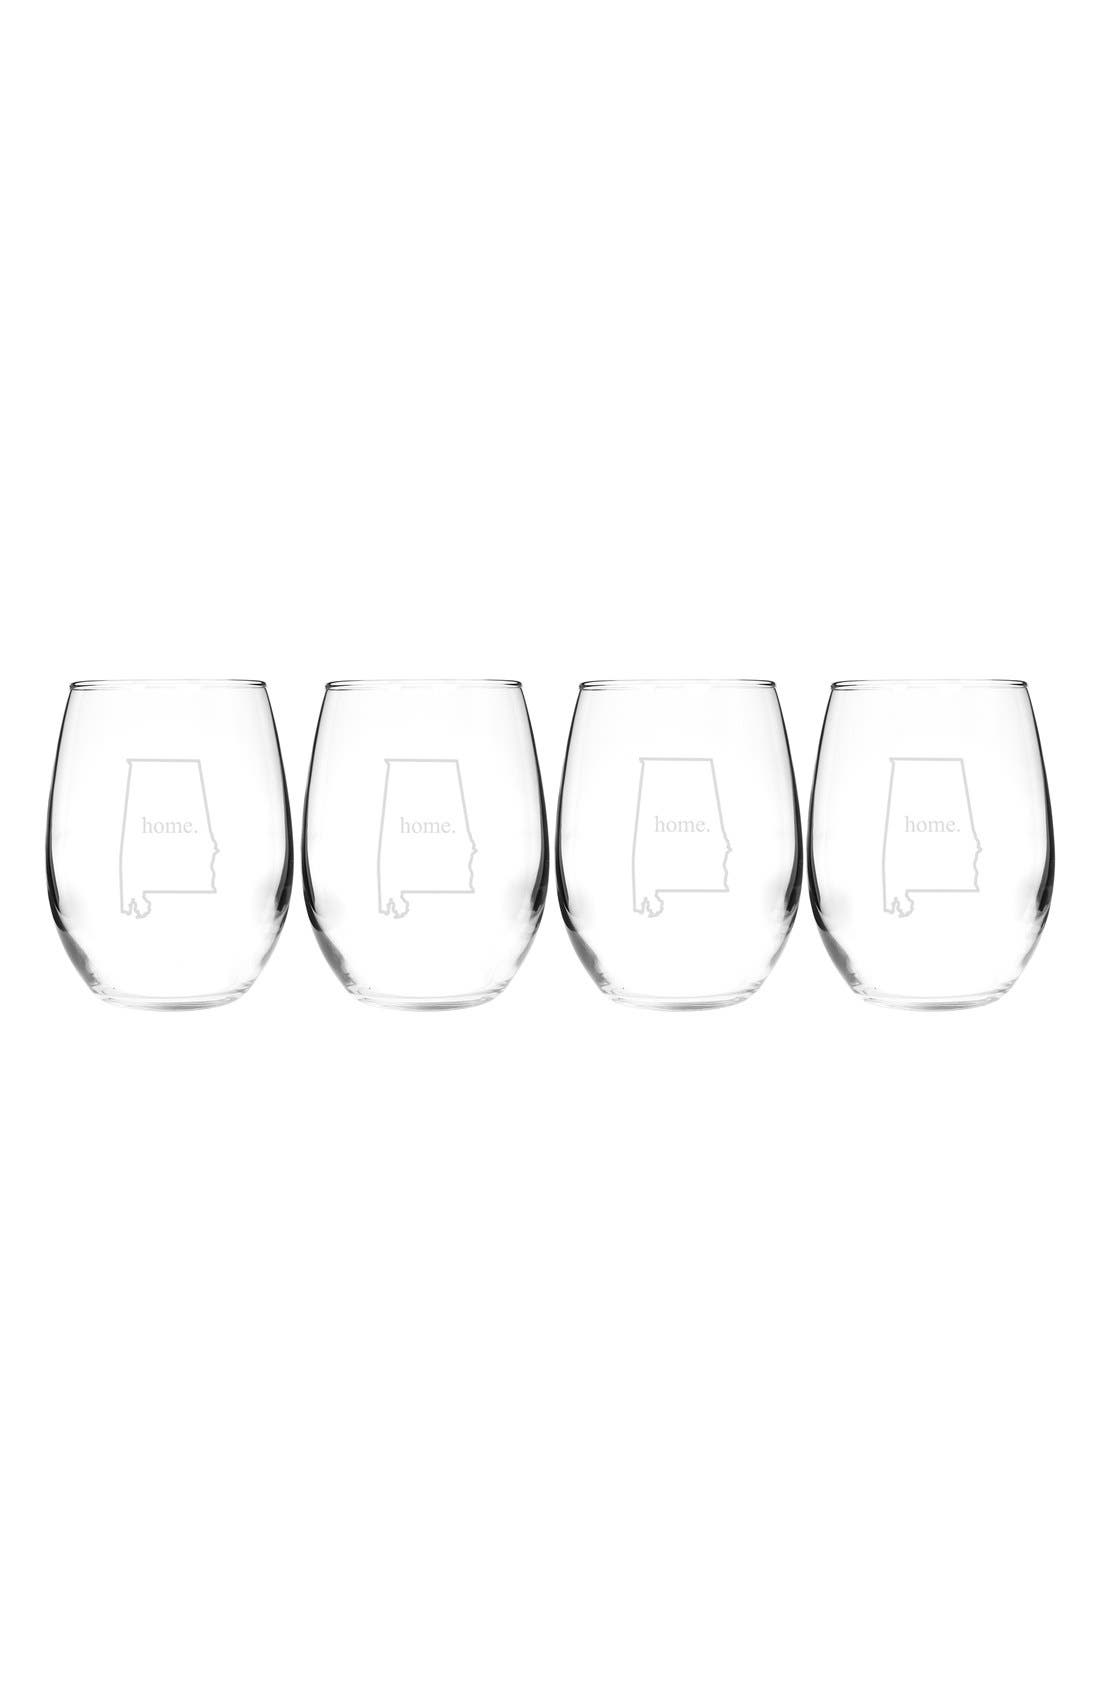 Home State Set of 4 Stemless Wine Glasses,                             Main thumbnail 3, color,